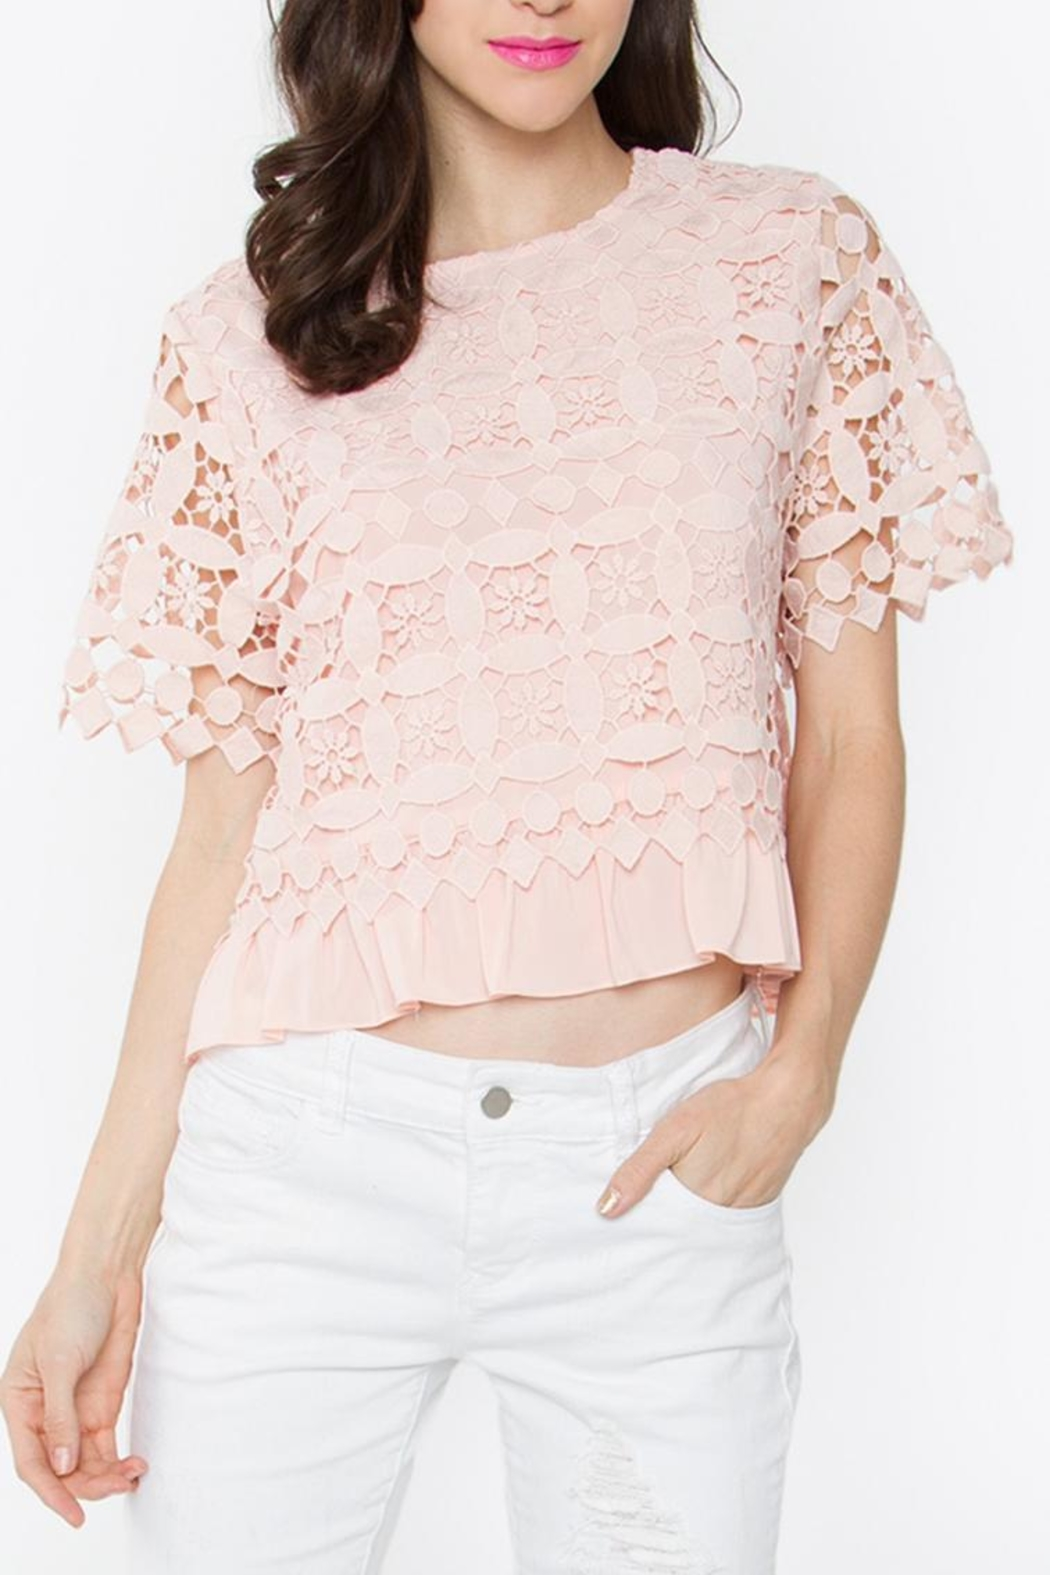 Sugarlips Blush Crochet Top - Front Cropped Image